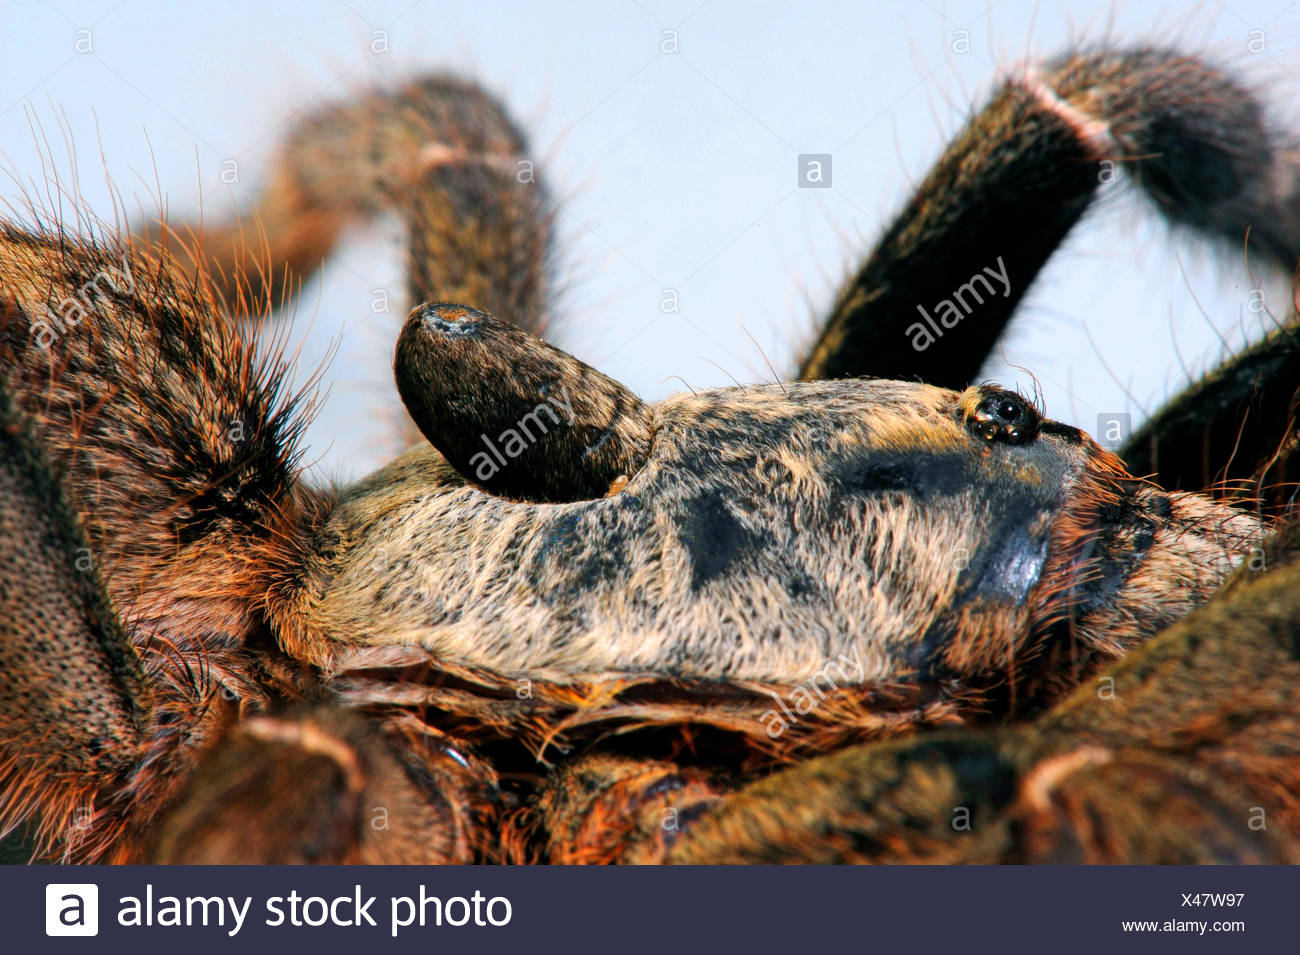 Horned baboon spider, African Rear-horned Baboon, Burst Horned Baboon, Straight Horn Tarantula (Ceratogyrus darlingi, Ceratogyrus bechuanicus, Ceratogyrus schultzei), detail of the horn Stock Photo